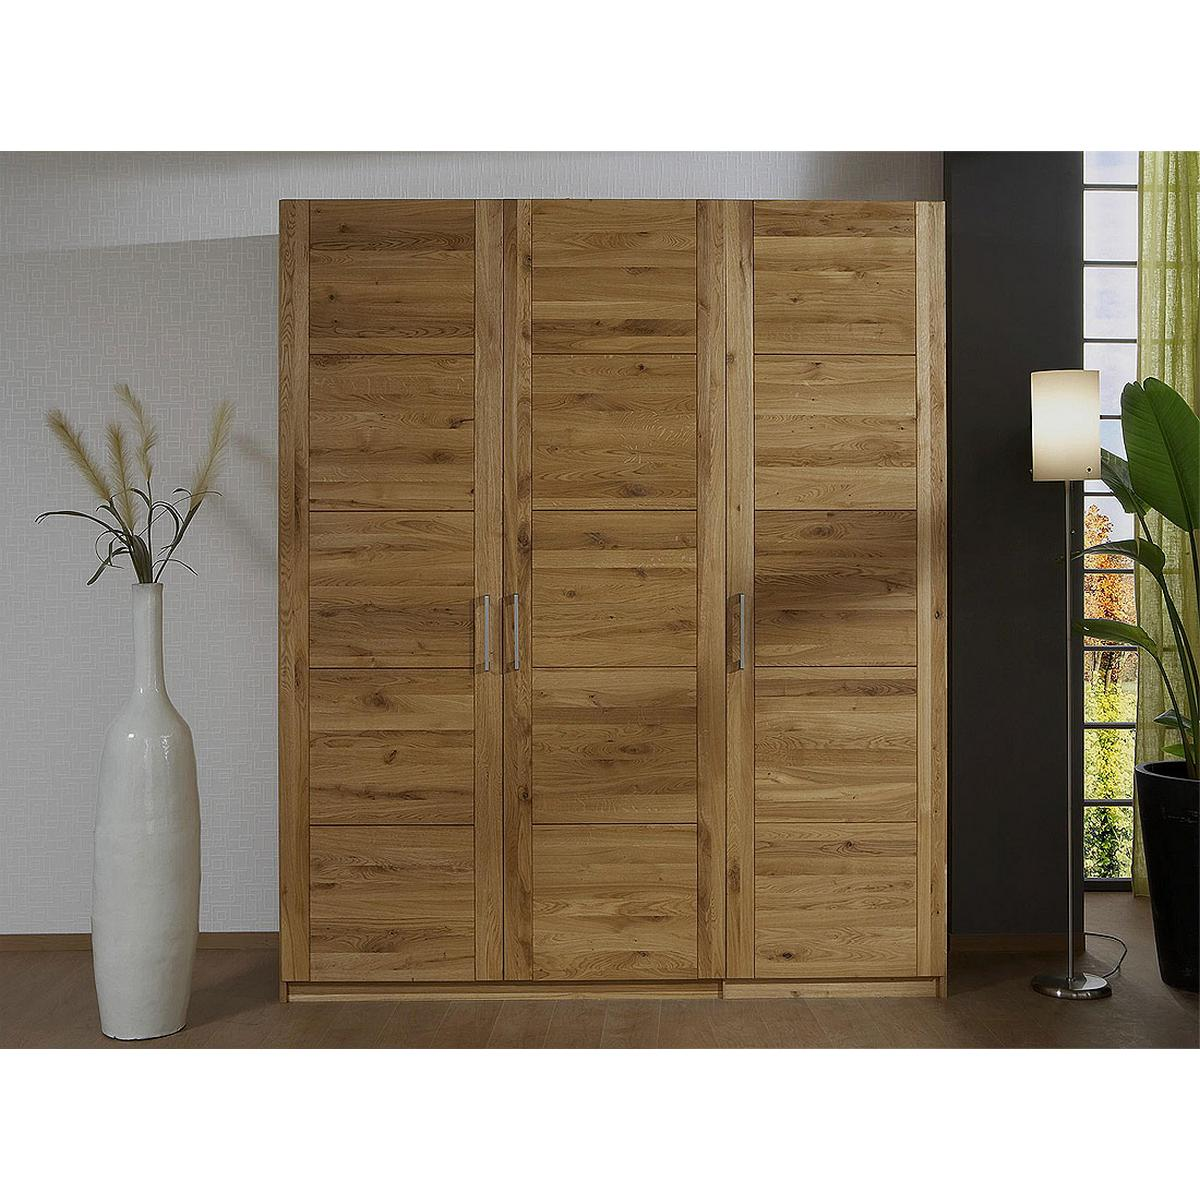 20 mm bold zusammenfassung echtholz kleiderschrank oxford. Black Bedroom Furniture Sets. Home Design Ideas